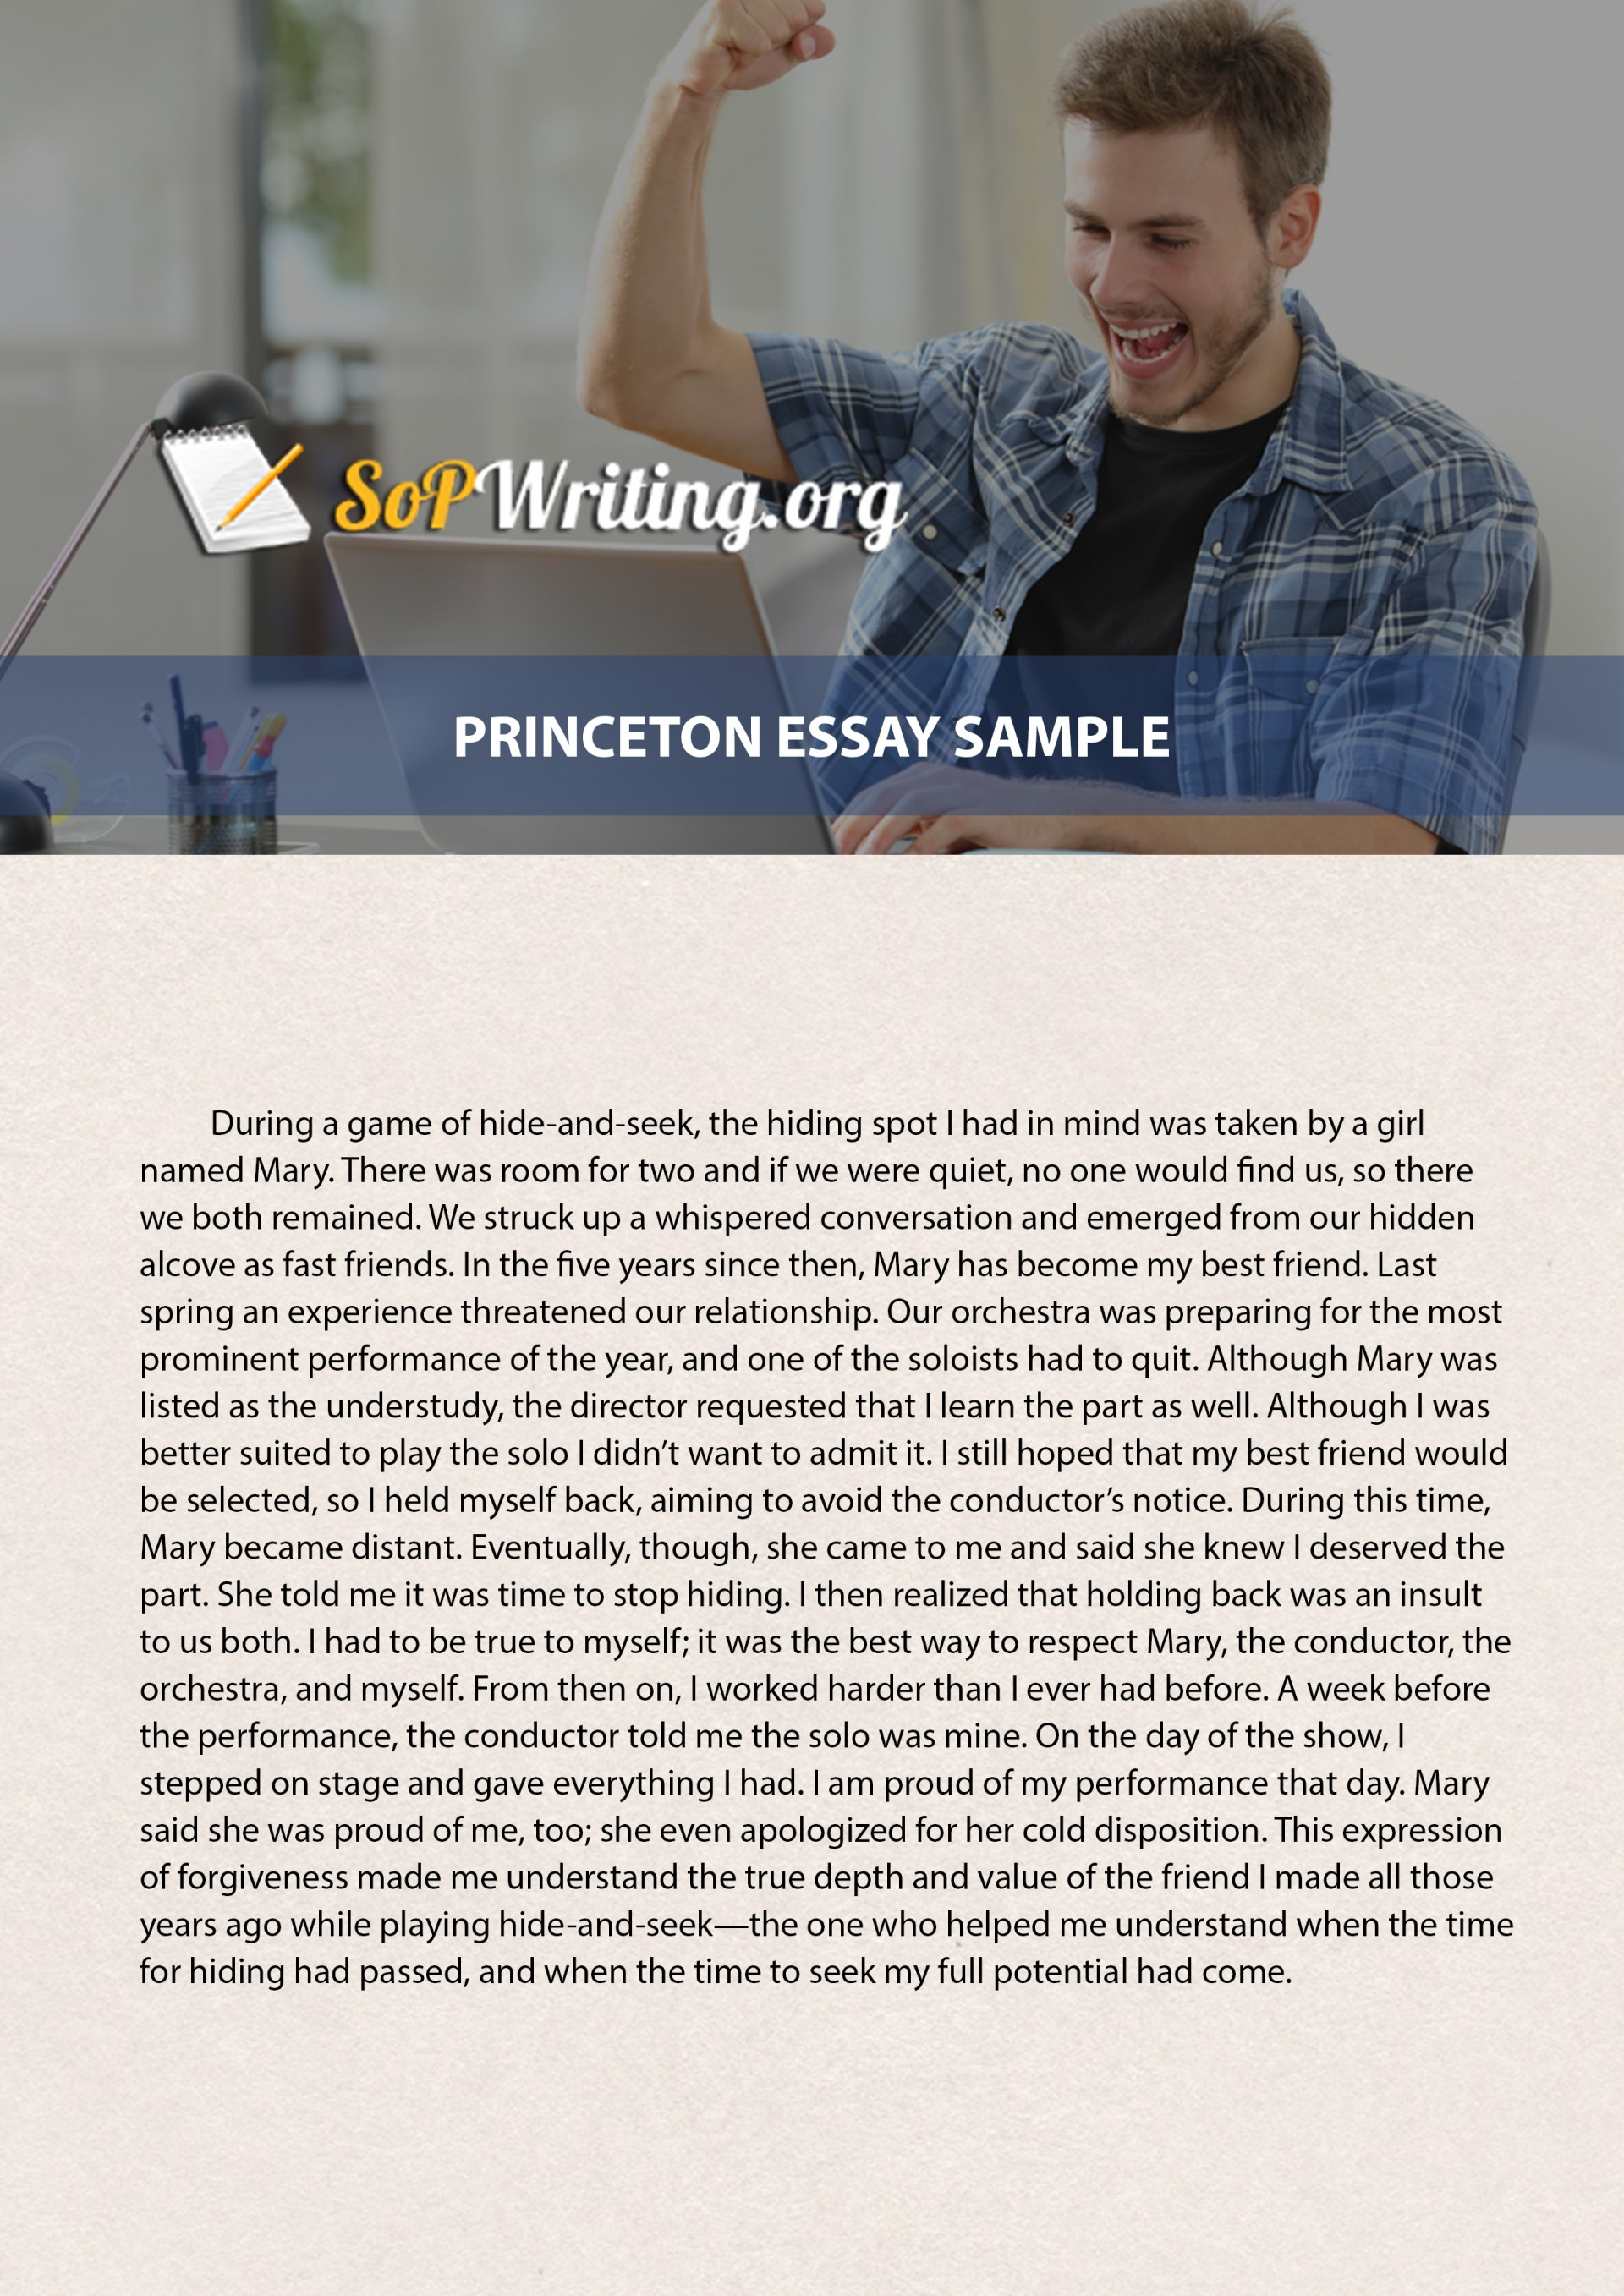 010 Princeton Essay Prompts Sample Sop Writing Dreaded University Prompt 2016 1920